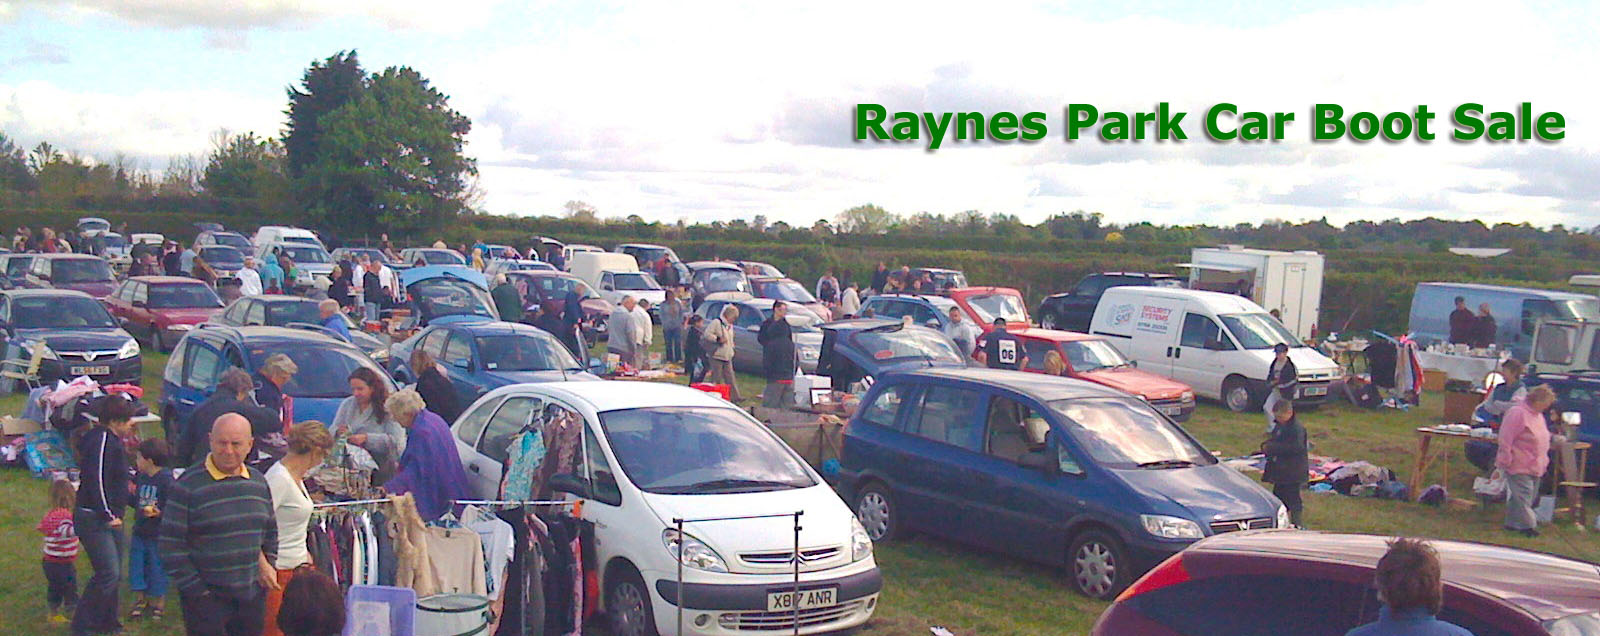 Raynes Park Car Boot Sale